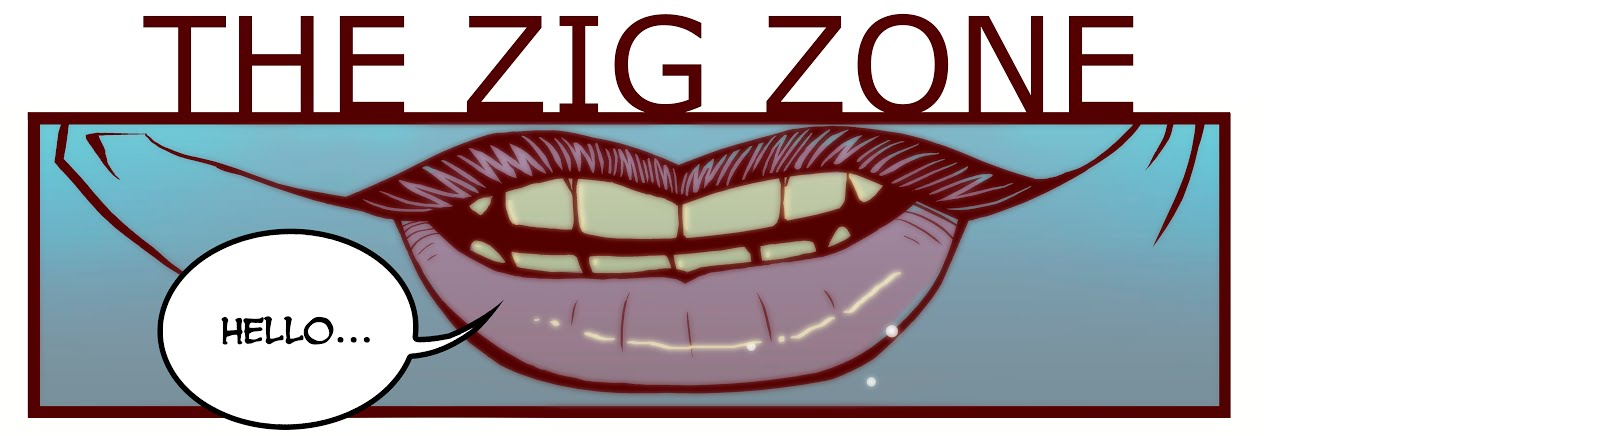 THE ZiG ZONE